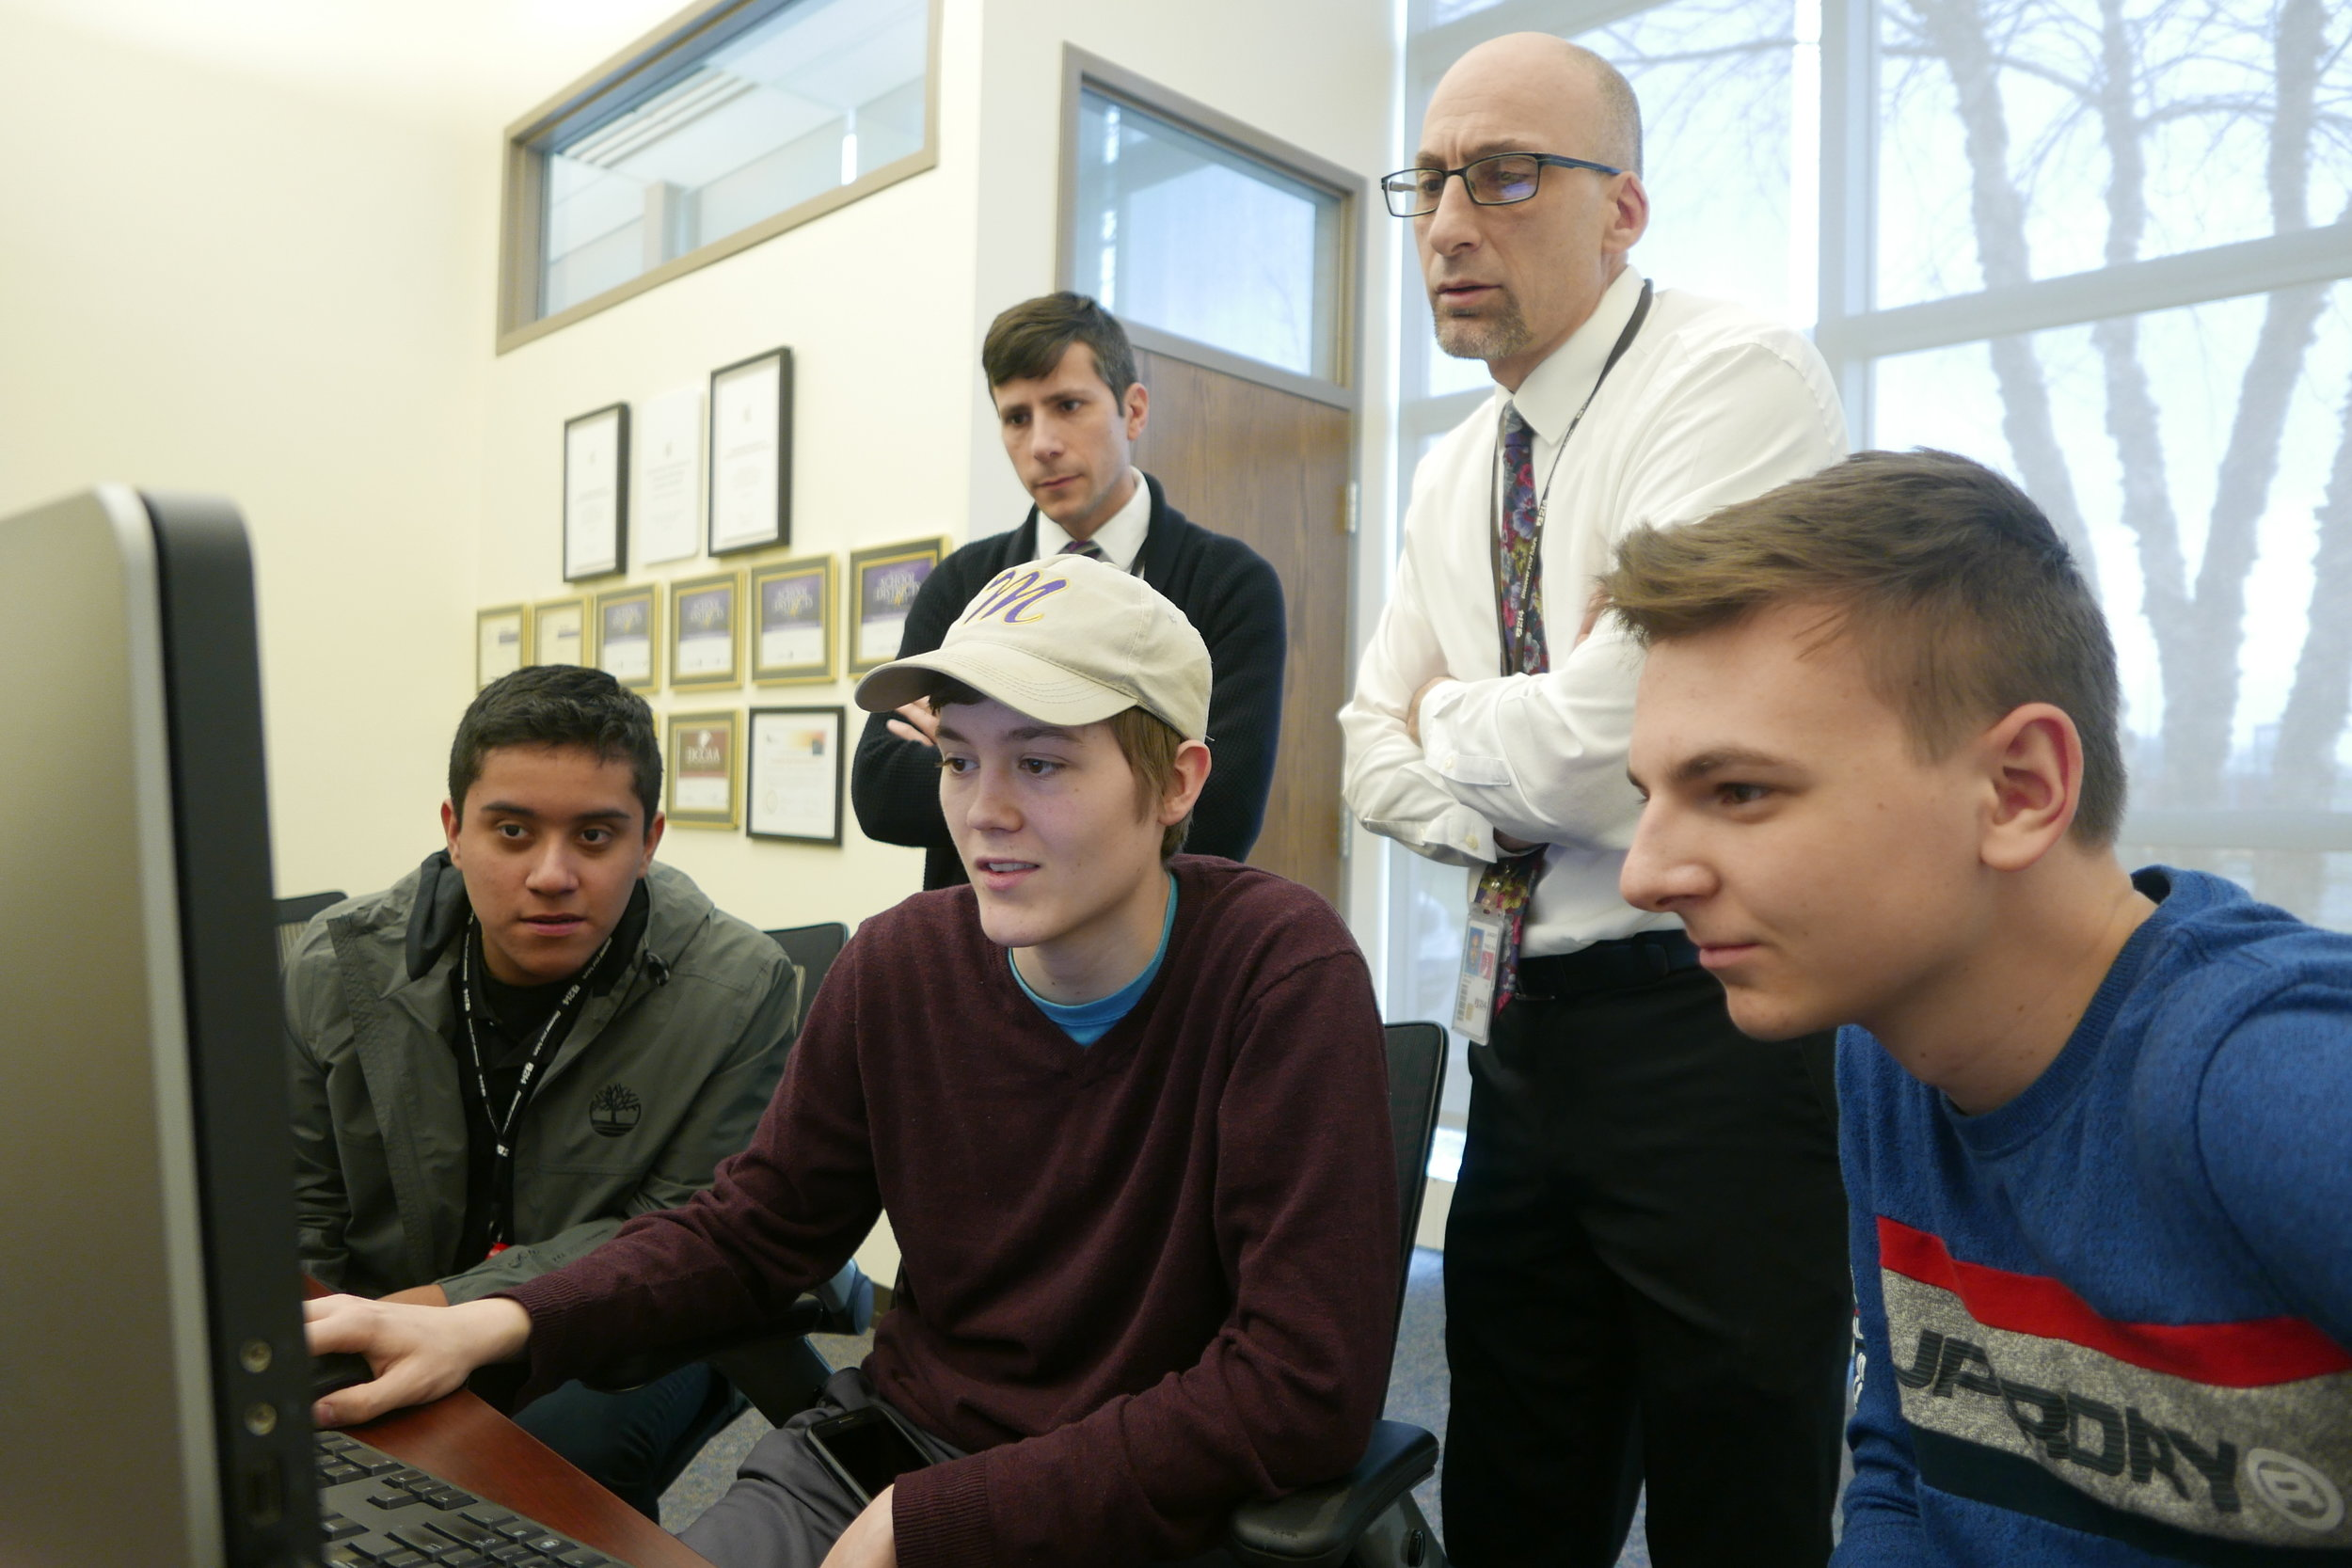 District 214 students (from left to right) Jovany Melchor, Bob Voss, Edin Hodzic are cybersecurity apprentices in the District's new Youth Apprenticeship program.